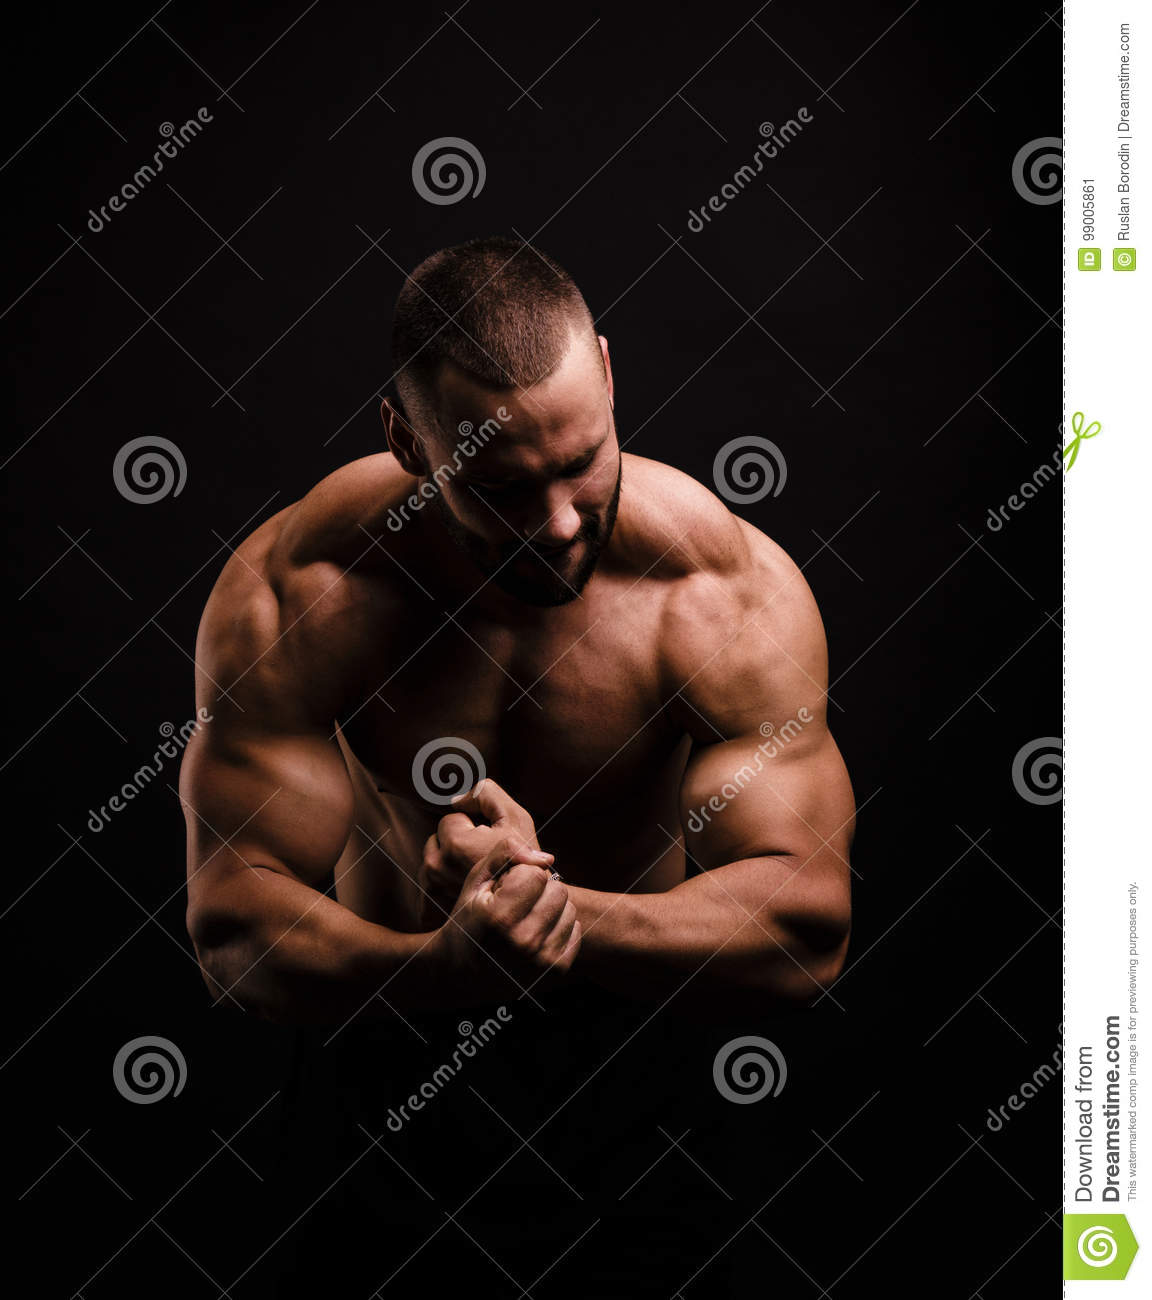 Hot muscular man on a black background. A shirtless bodybuilder showing off triceps and biceps. Hard workout concept.